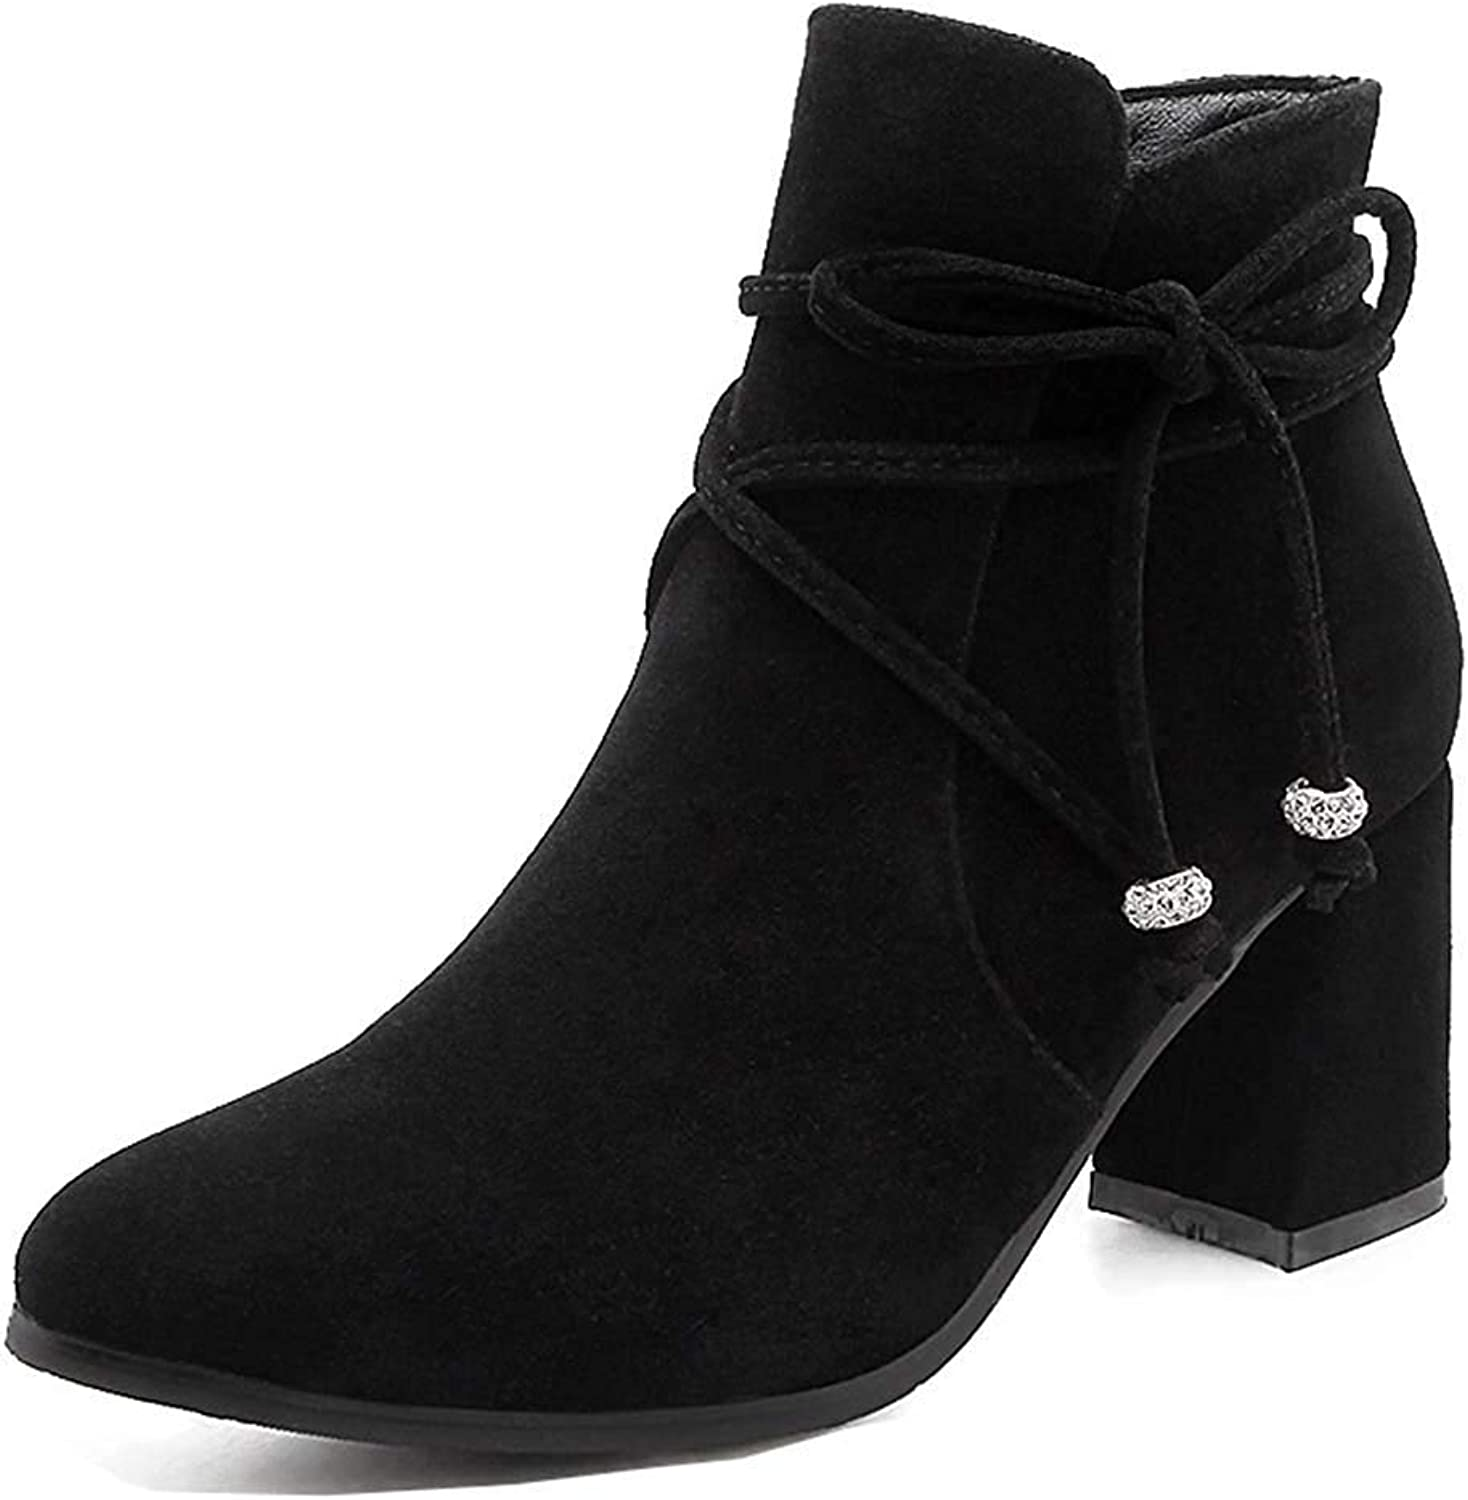 Unm Women's Trendy Strappy Pointed Toe Dress Short Boots Chunky High Heel Ankle Booties with Zipper